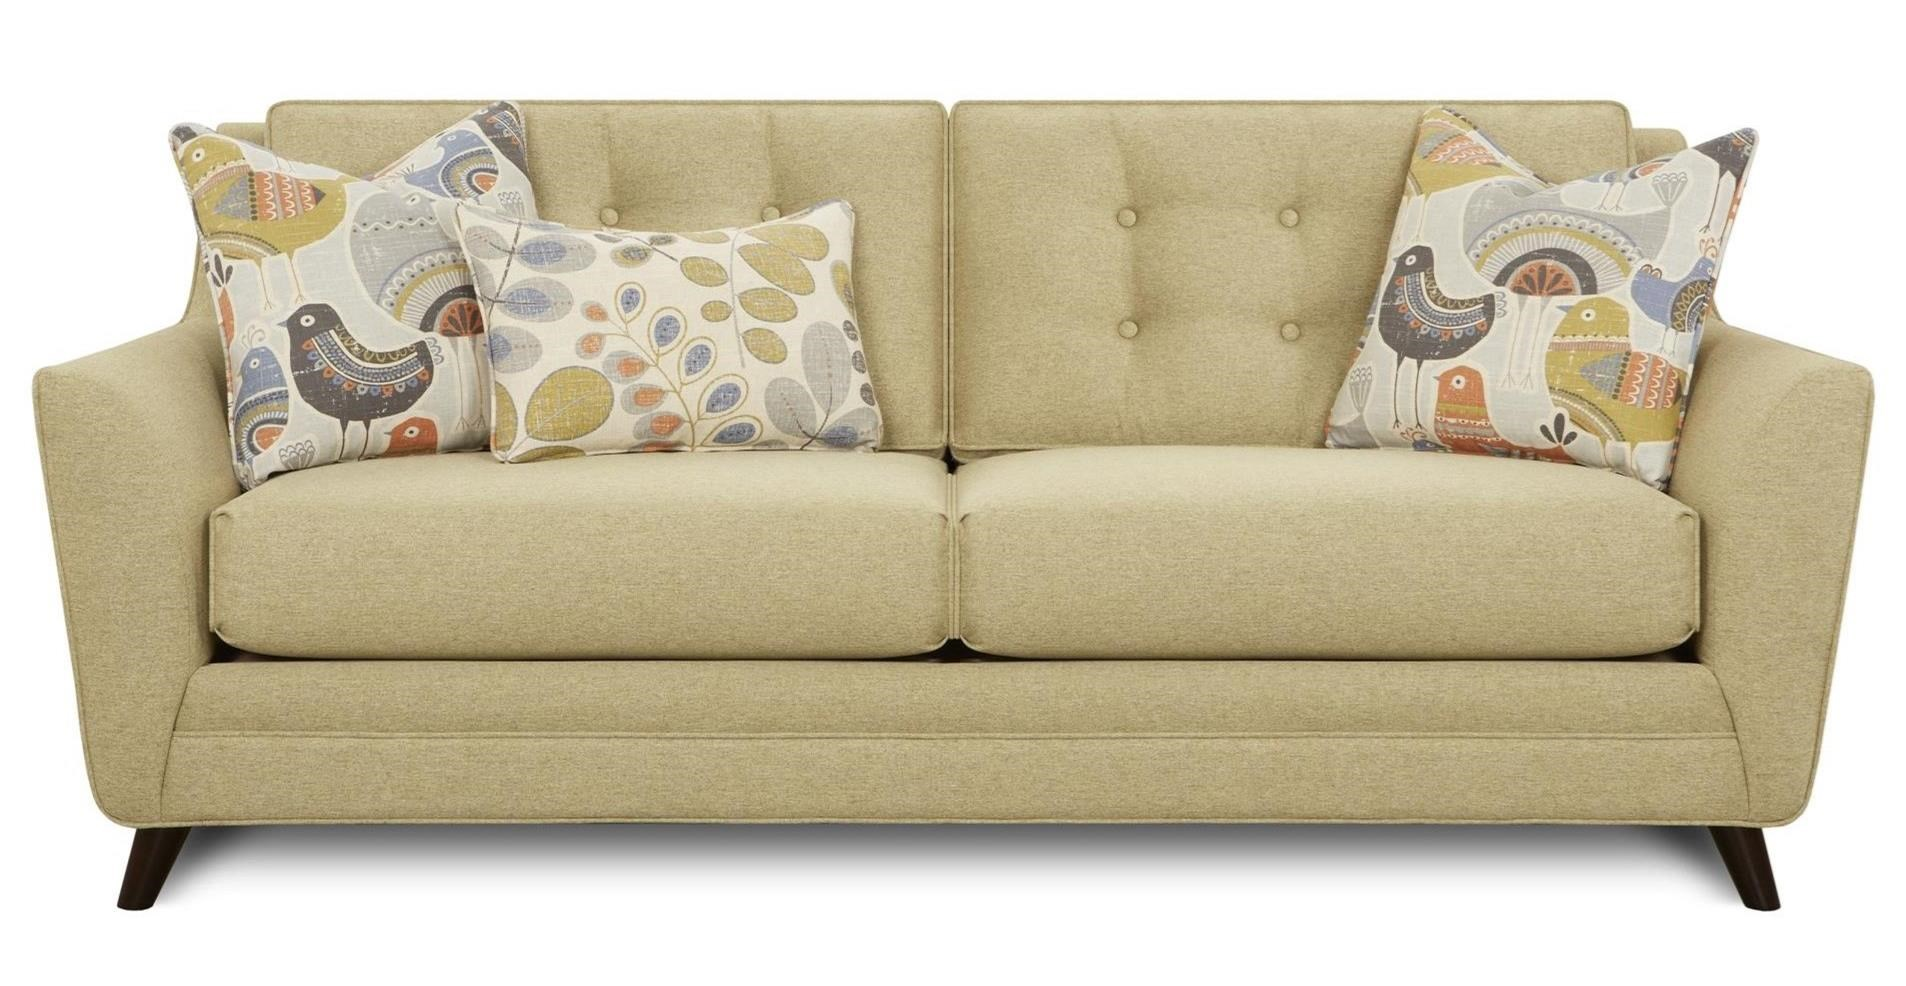 1355 Mid Century Modern Tufted Sofa by FN at Lindy\'s Furniture Company